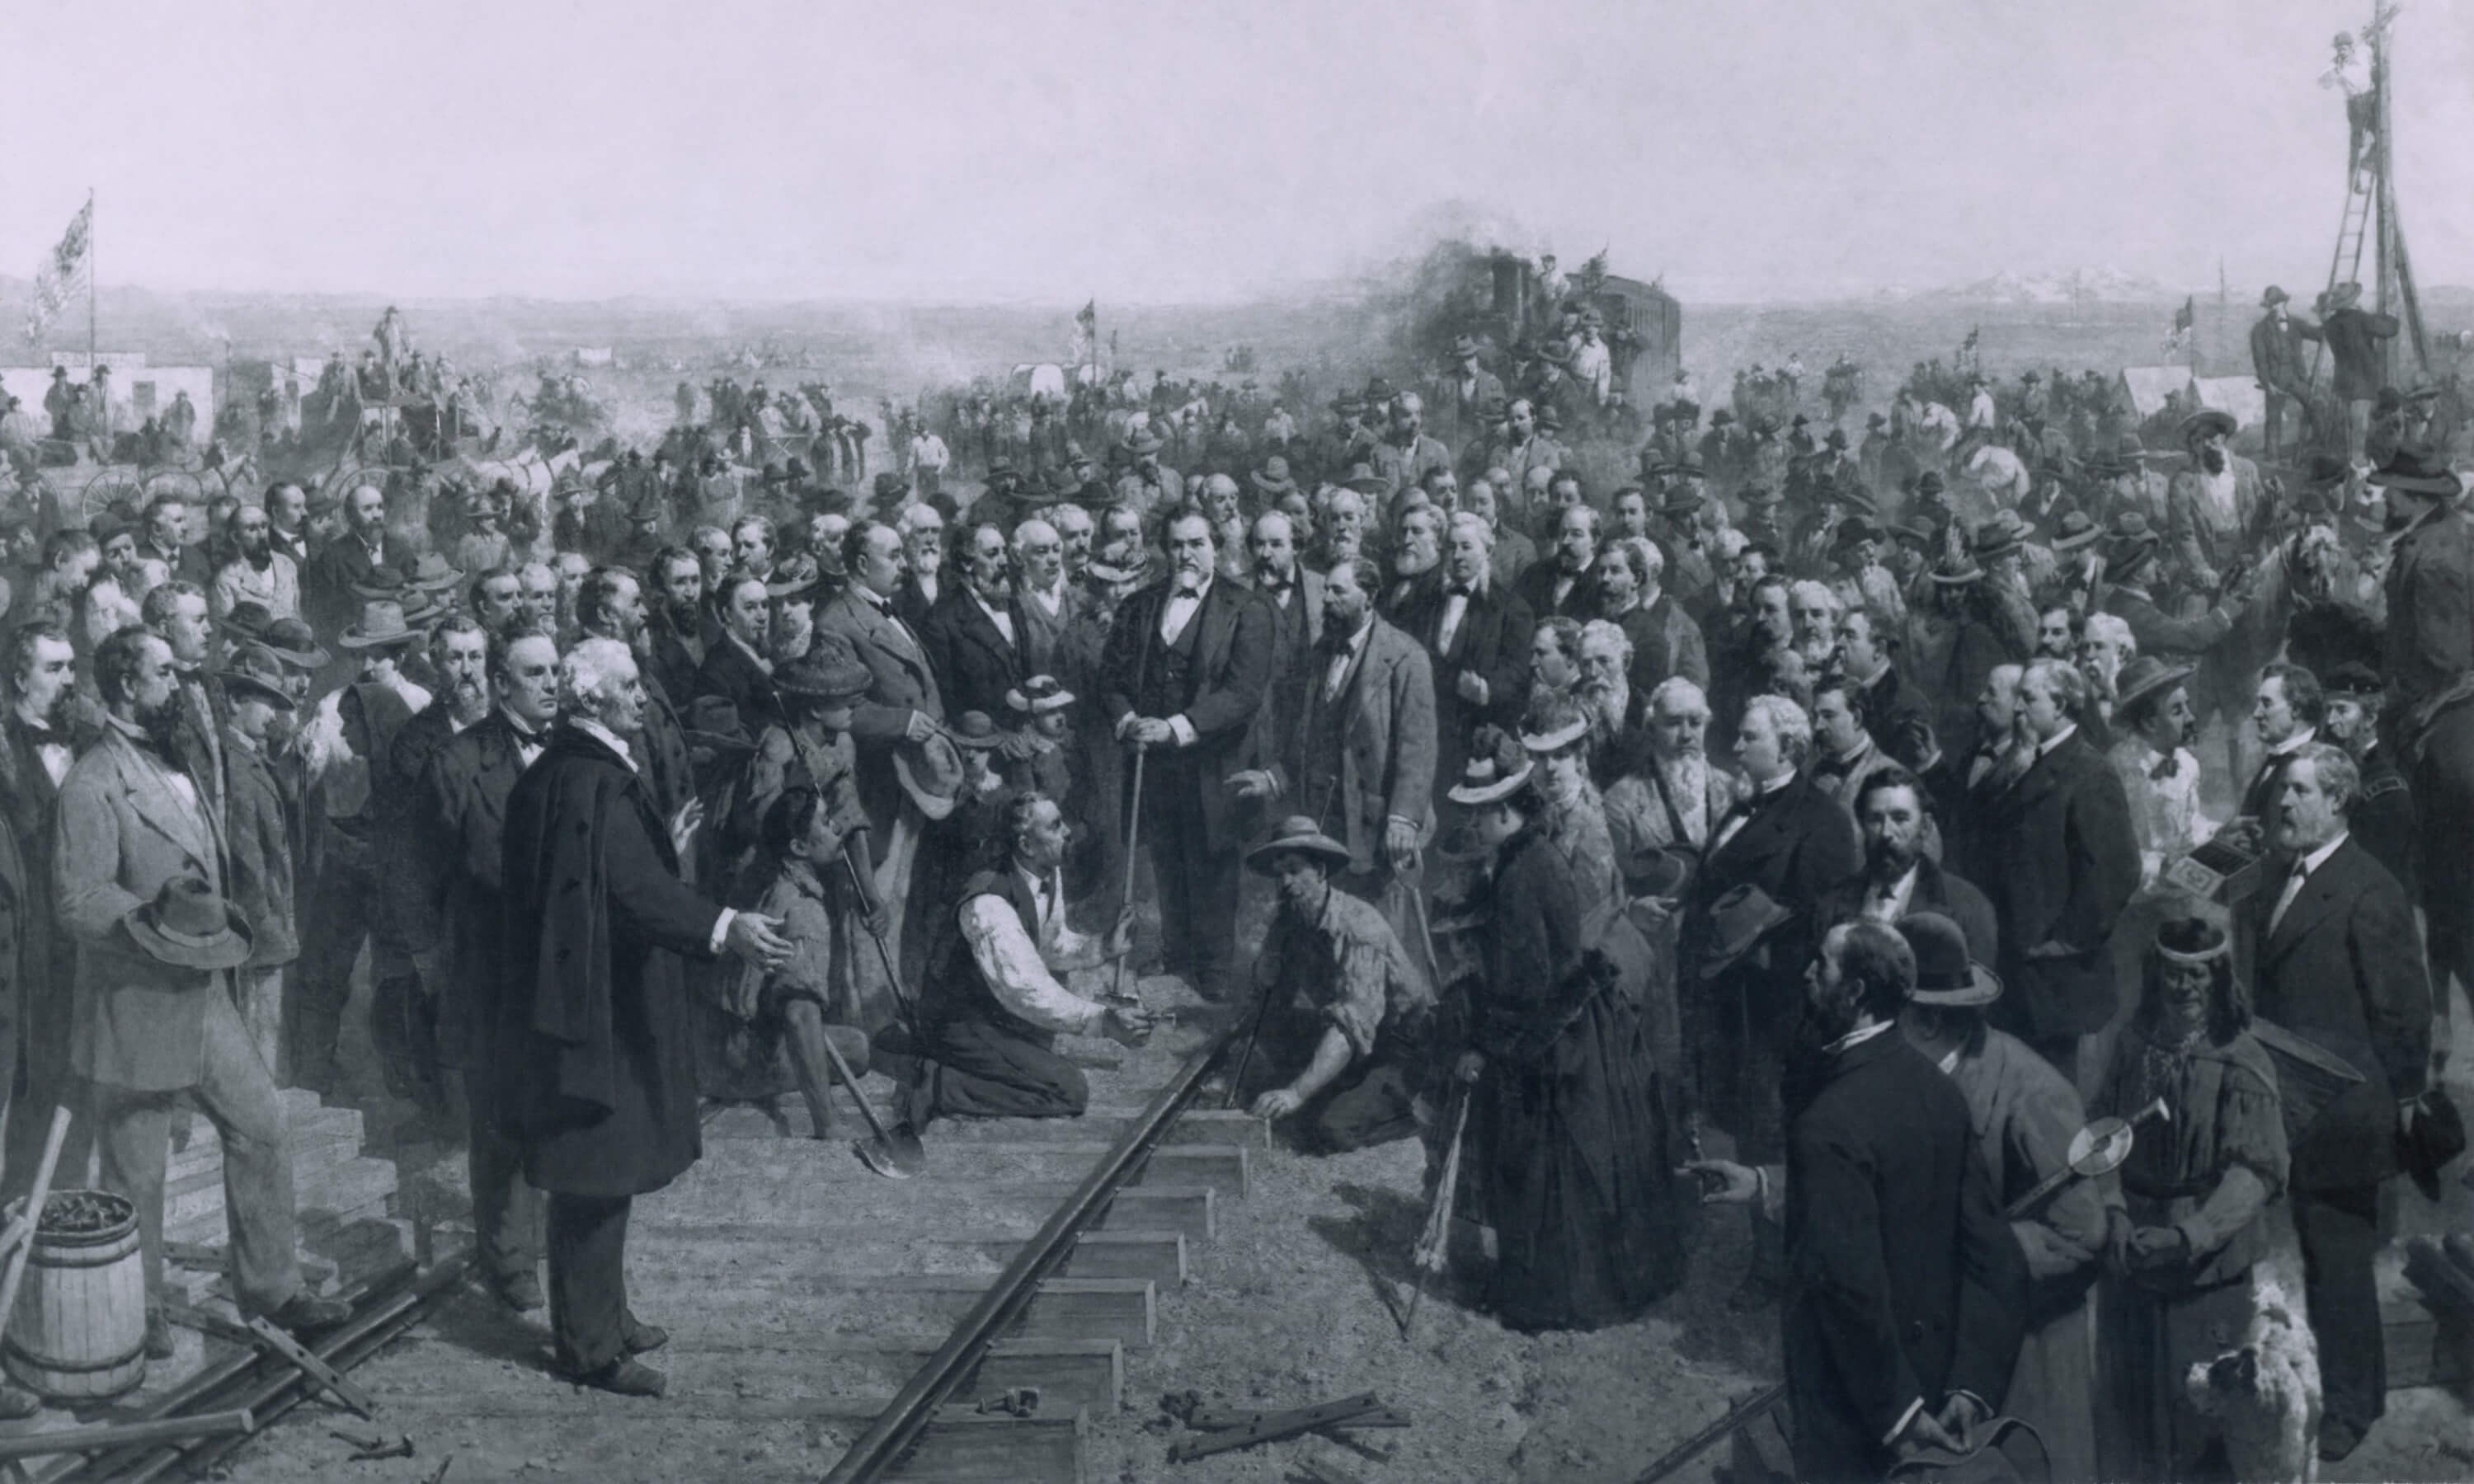 THE LAST SPIKE 1881 a painting by Thomas Hill depicts the ceremony held at Promontory Point Utah on May 10 1869 marking the completion of the transcontinental railroad.